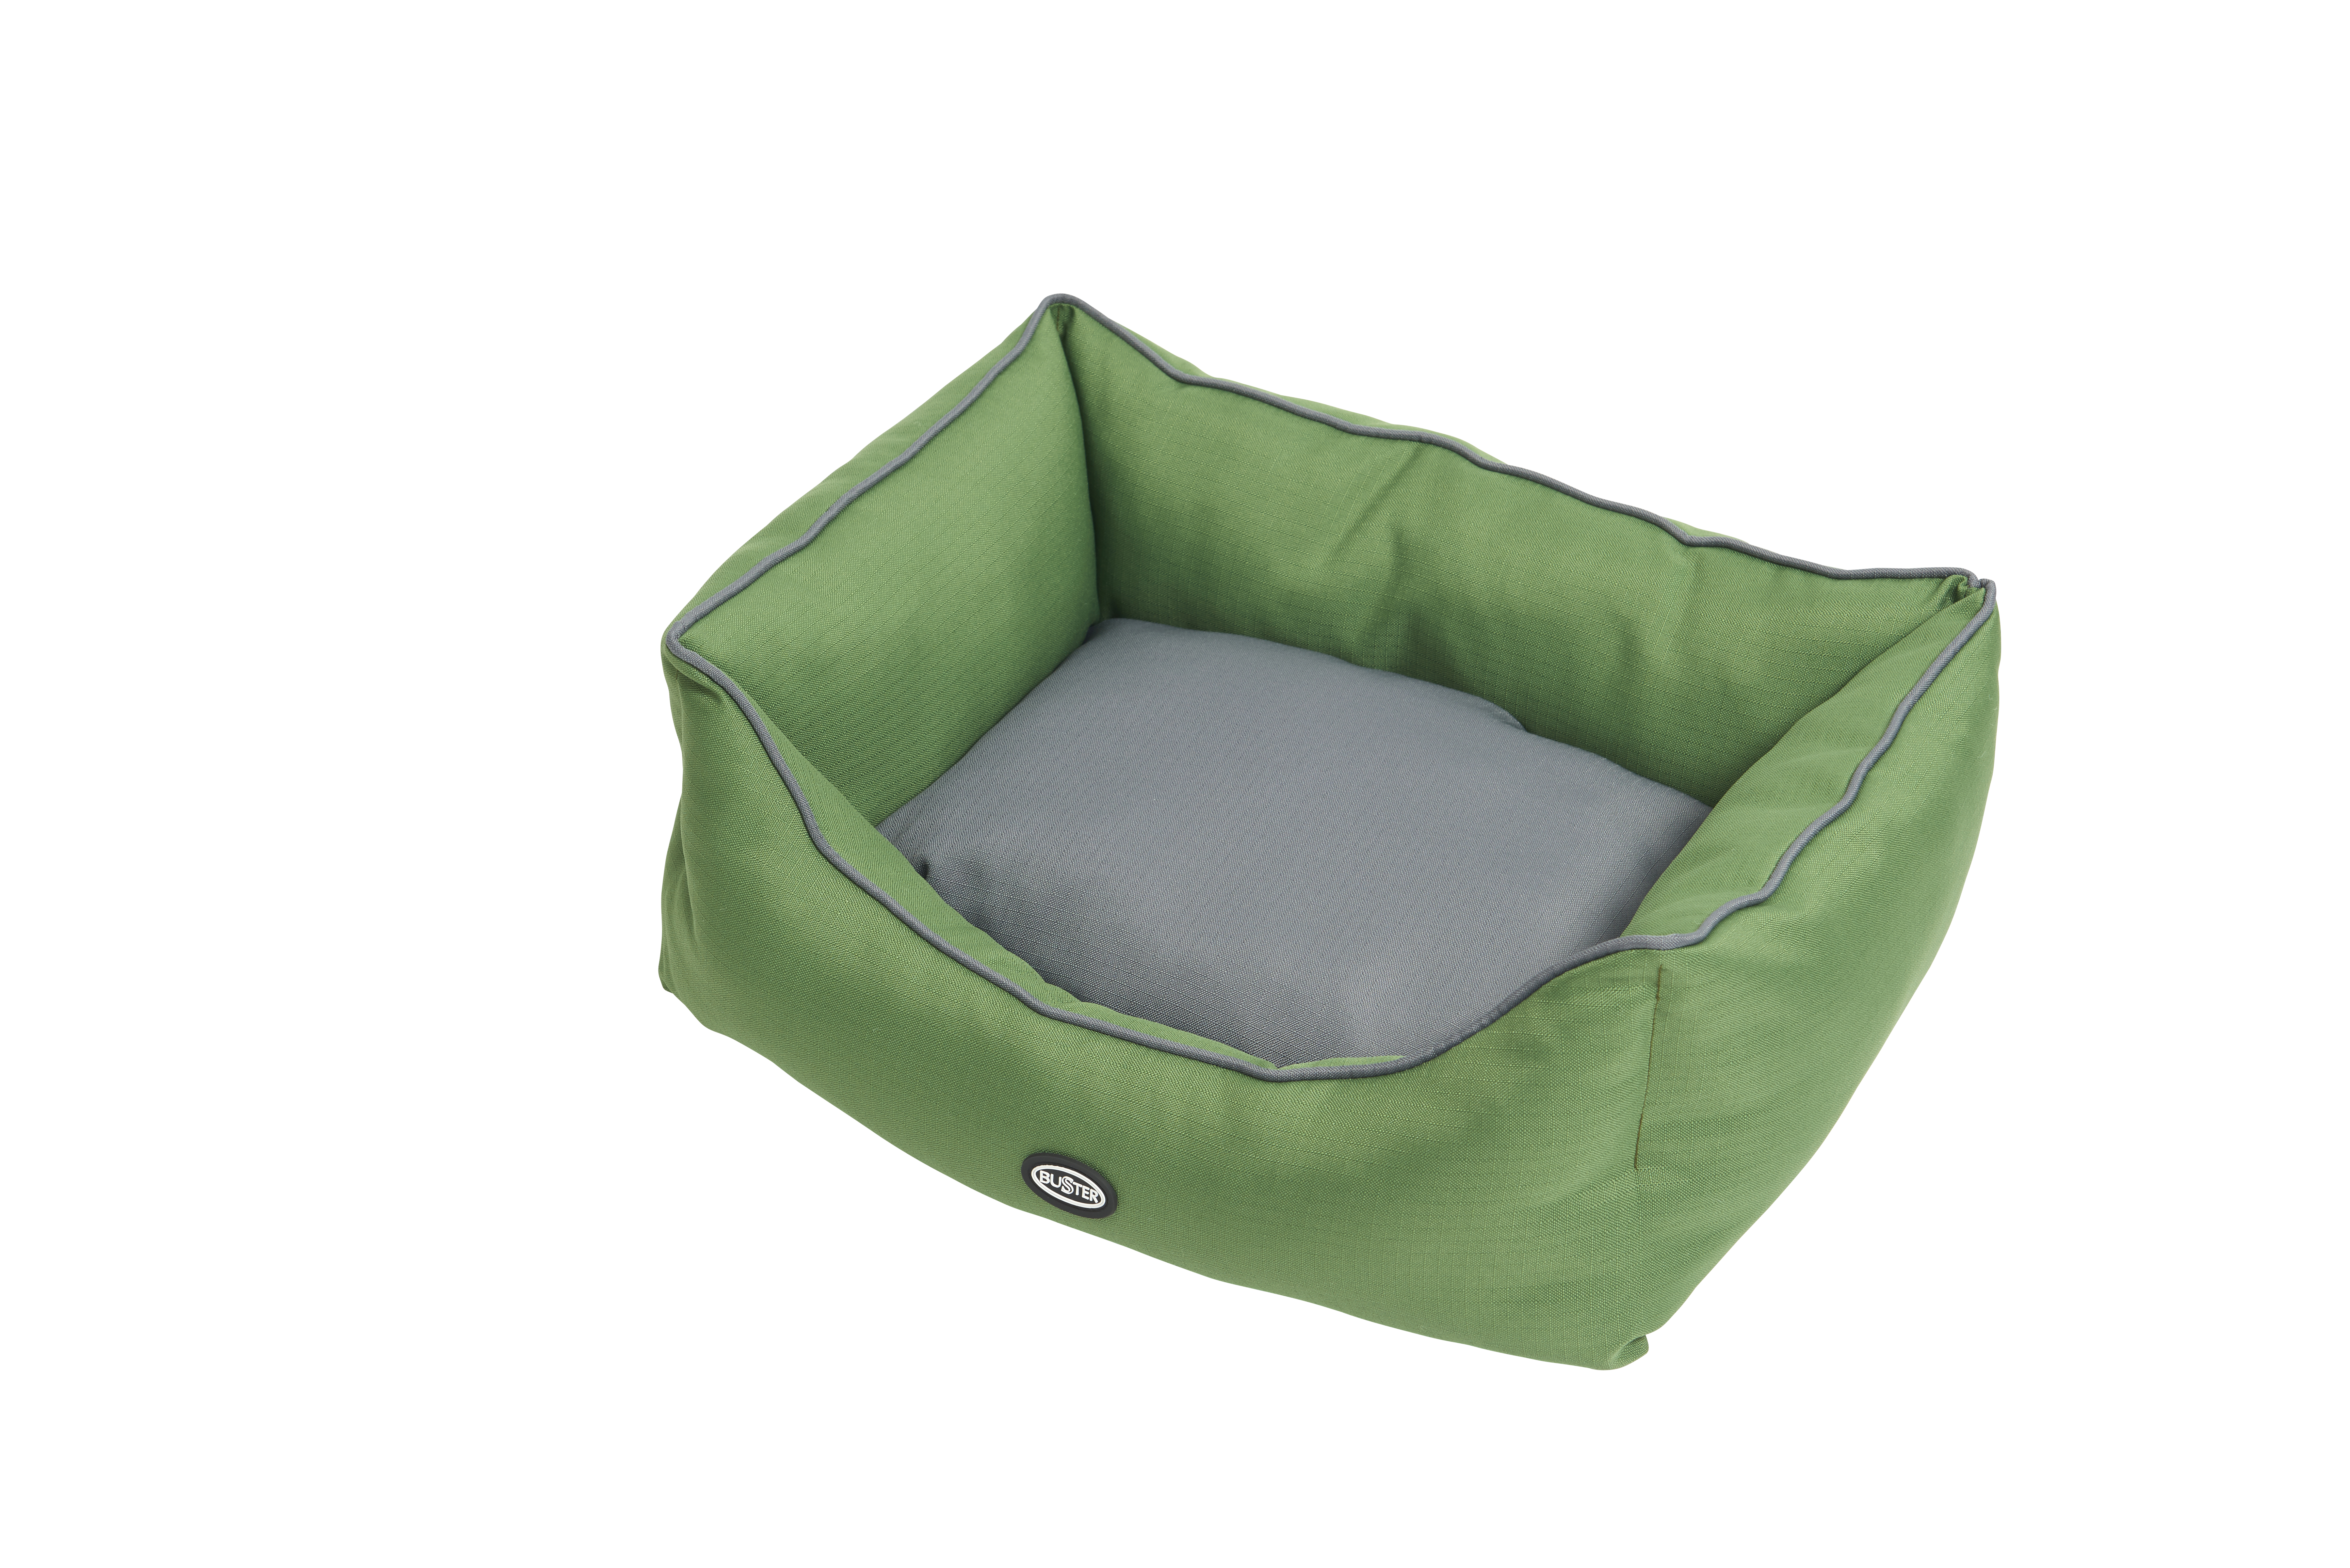 BUSTER sofa bed 45 x 60 cm, artichoke green/steel grey